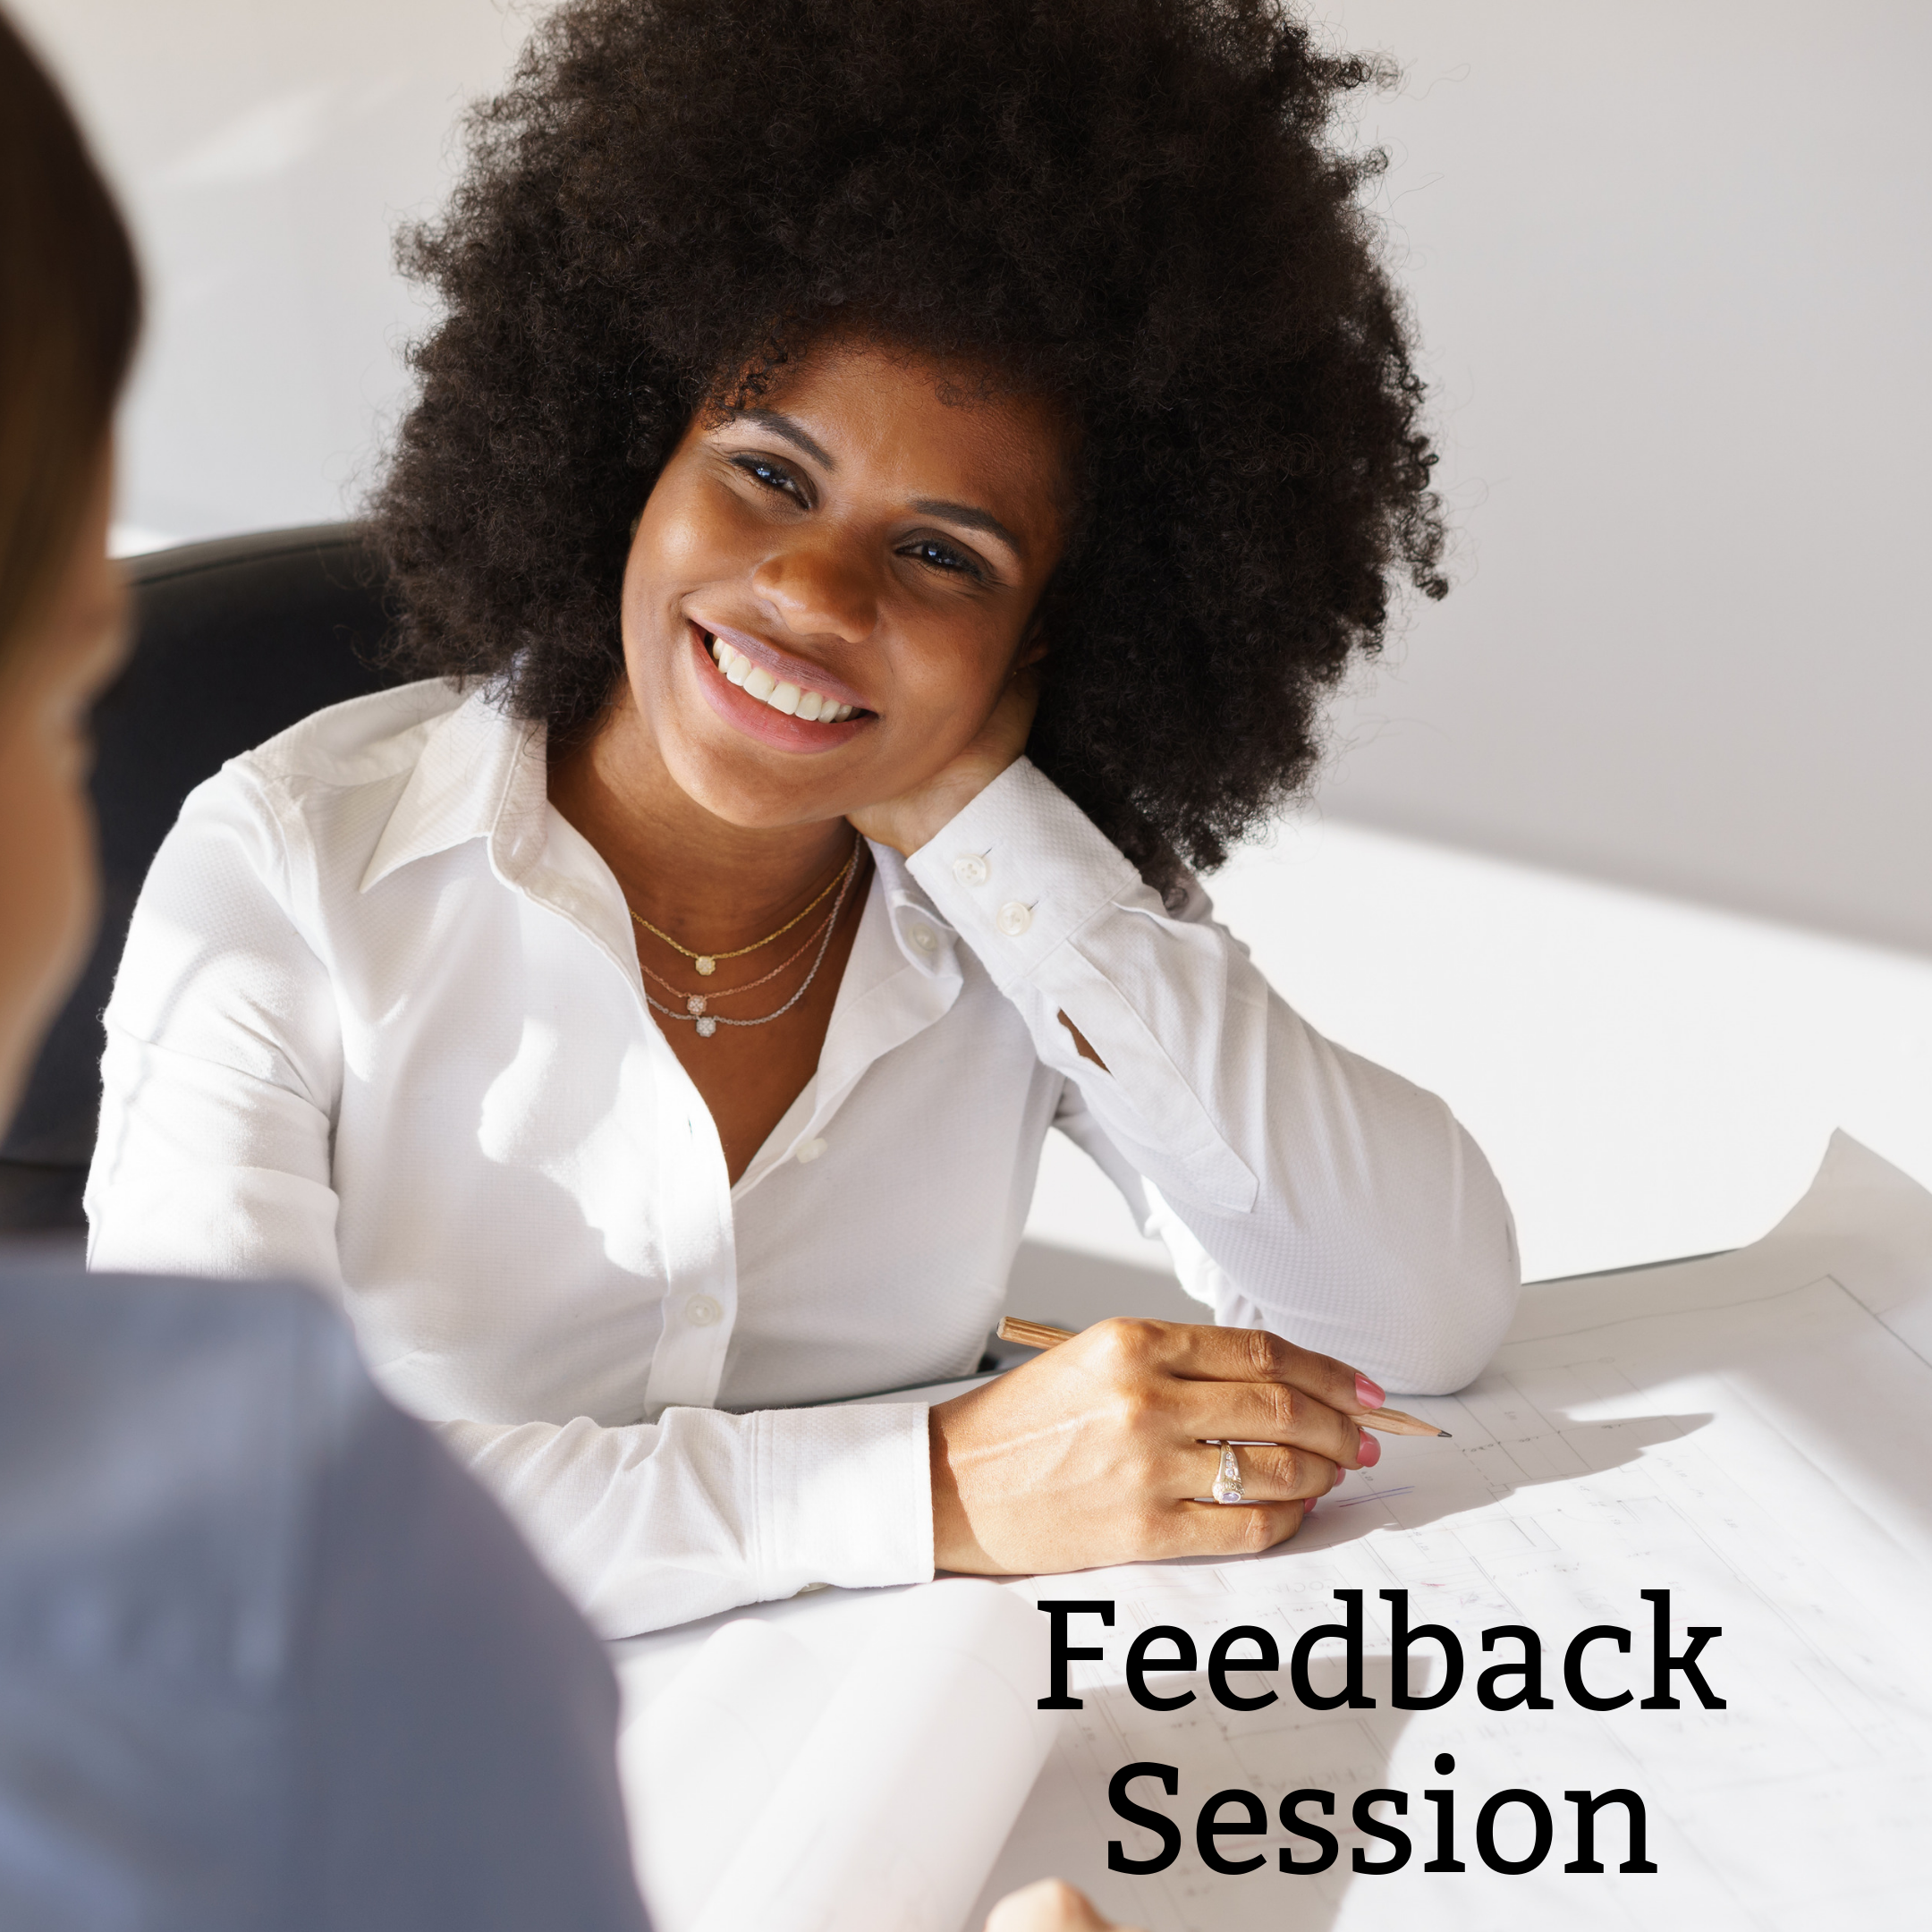 Feedback session - Feedback Sessions are scheduled in 30-minute intervals. This is an add-on service that compliments another services (CV Audit, Contract Review, etc.) completed. Schedule this service when you prefer feedback directly versus the included electronic means (email/video recording).